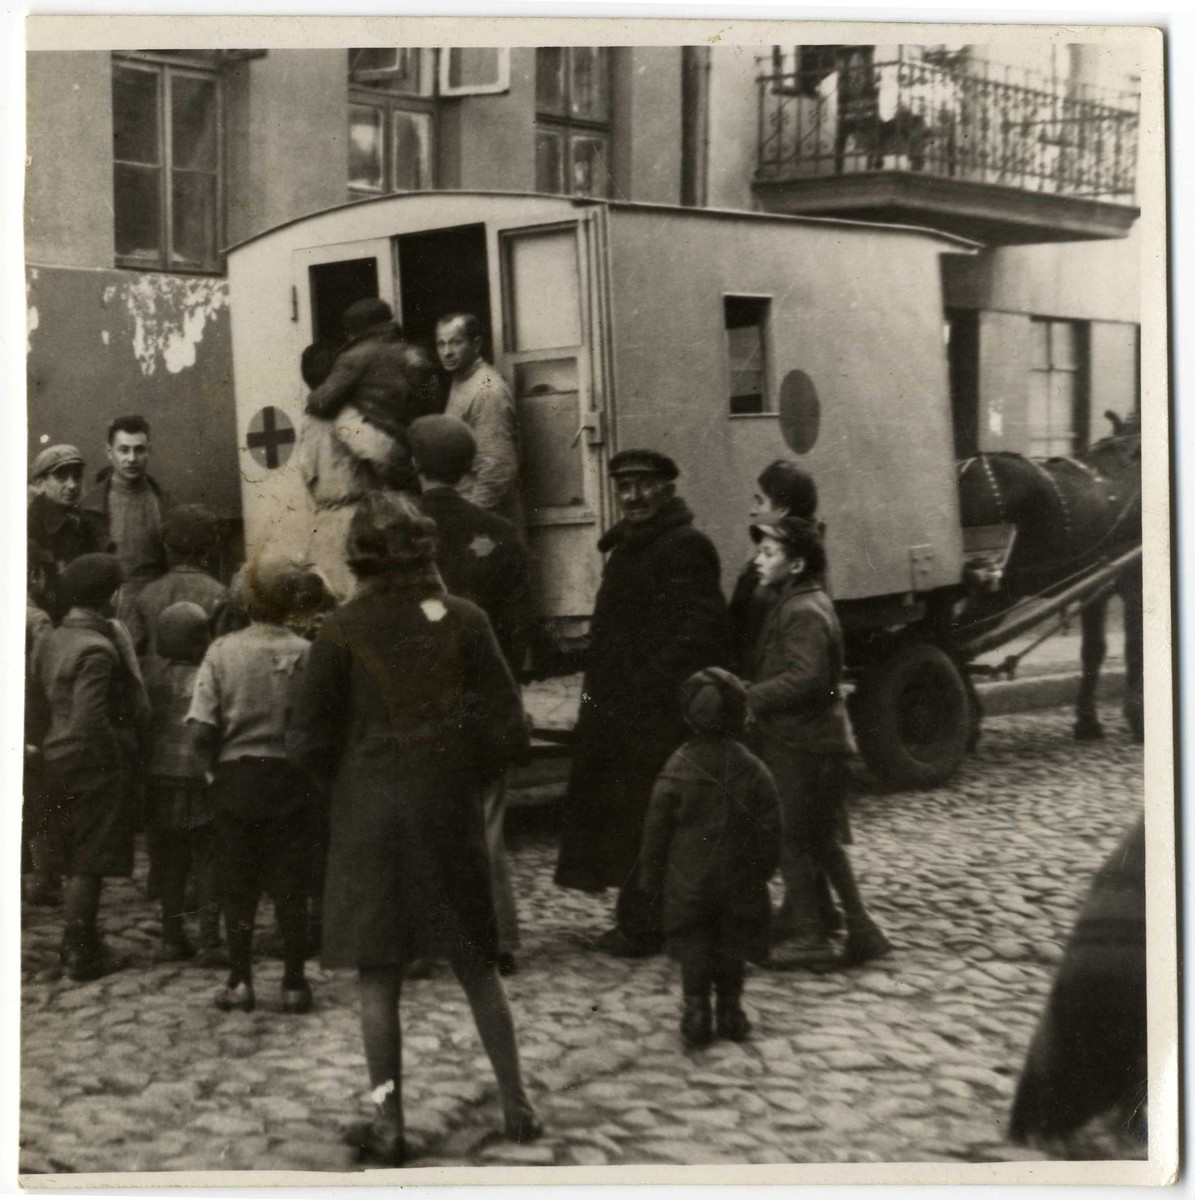 A young child is carried into a horse-drawn ambulance while other children gather around to watch.